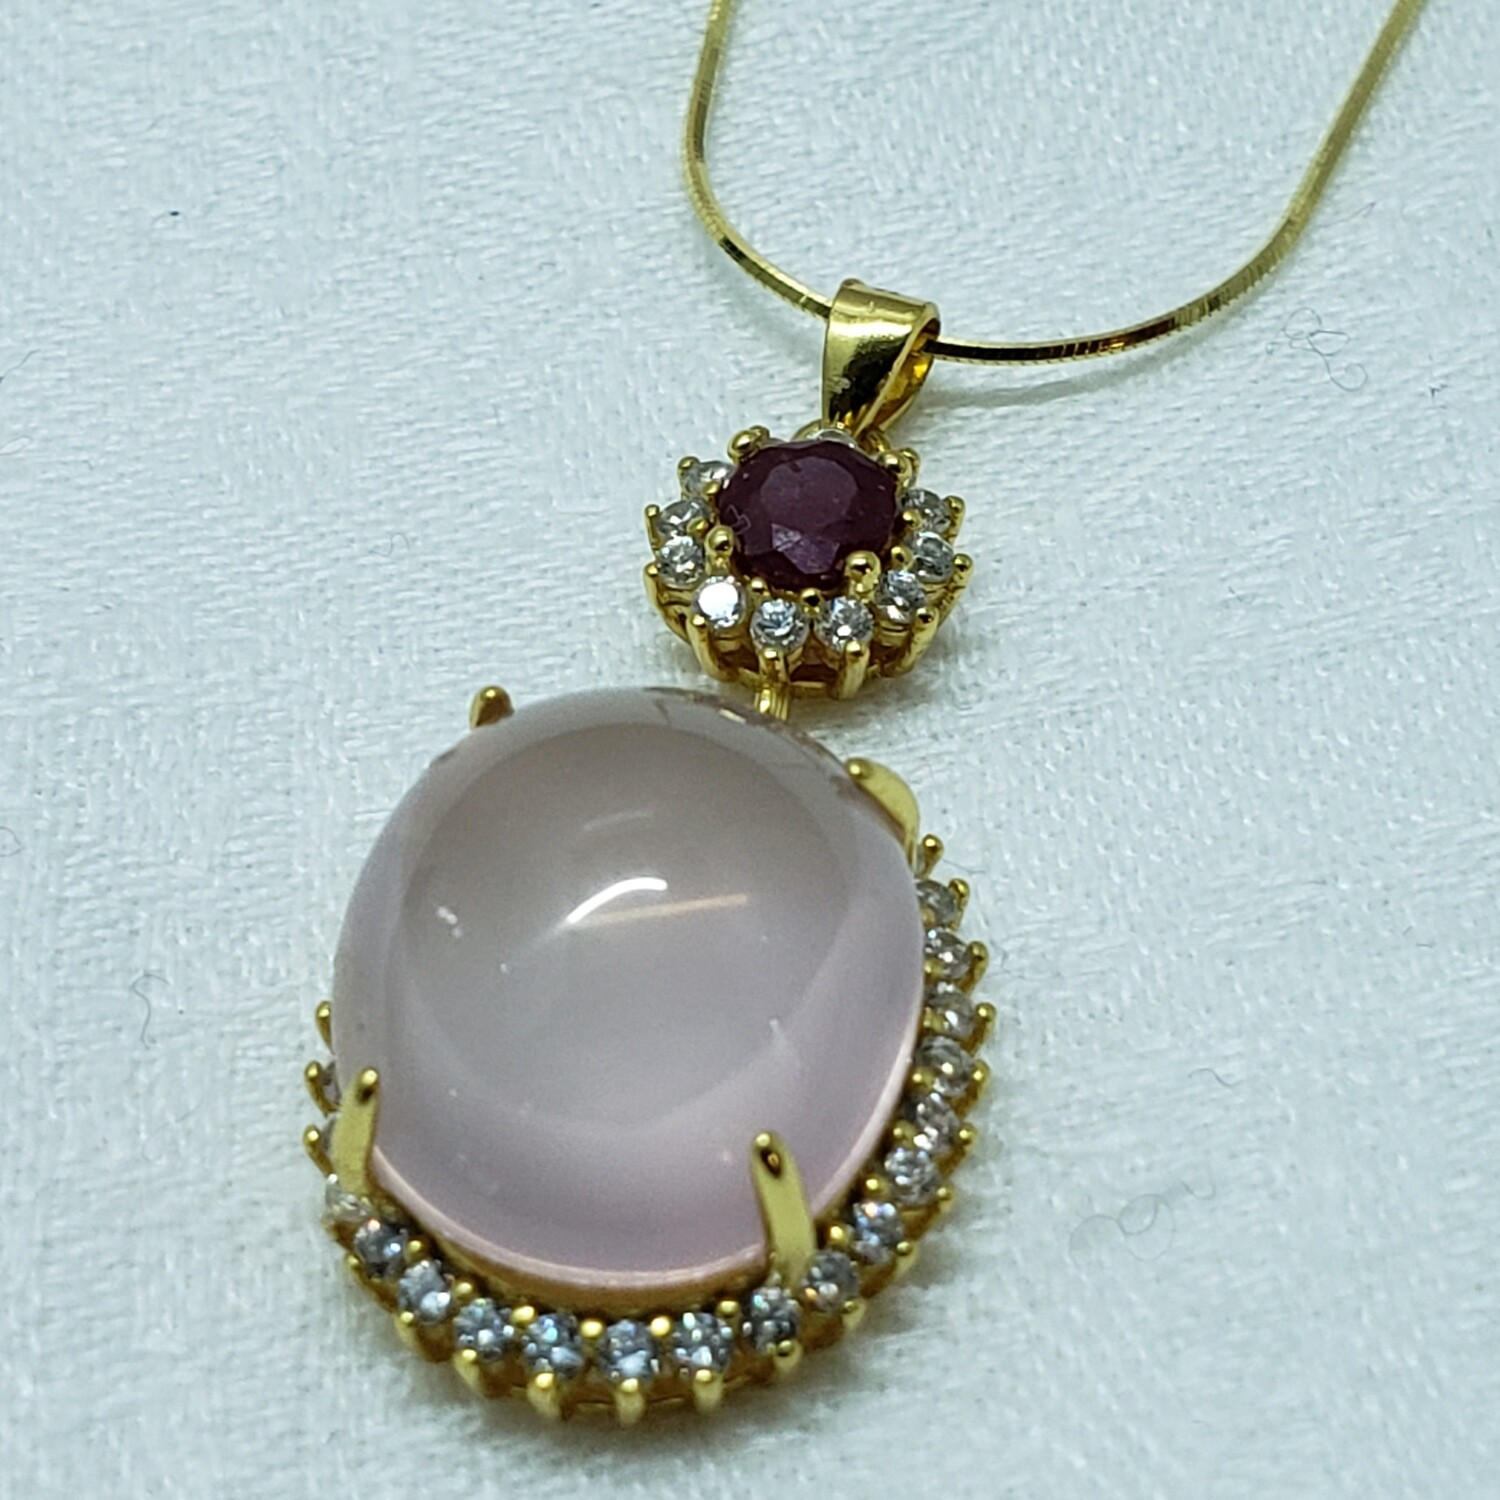 Gold plated sterling necklace with genuine ruby